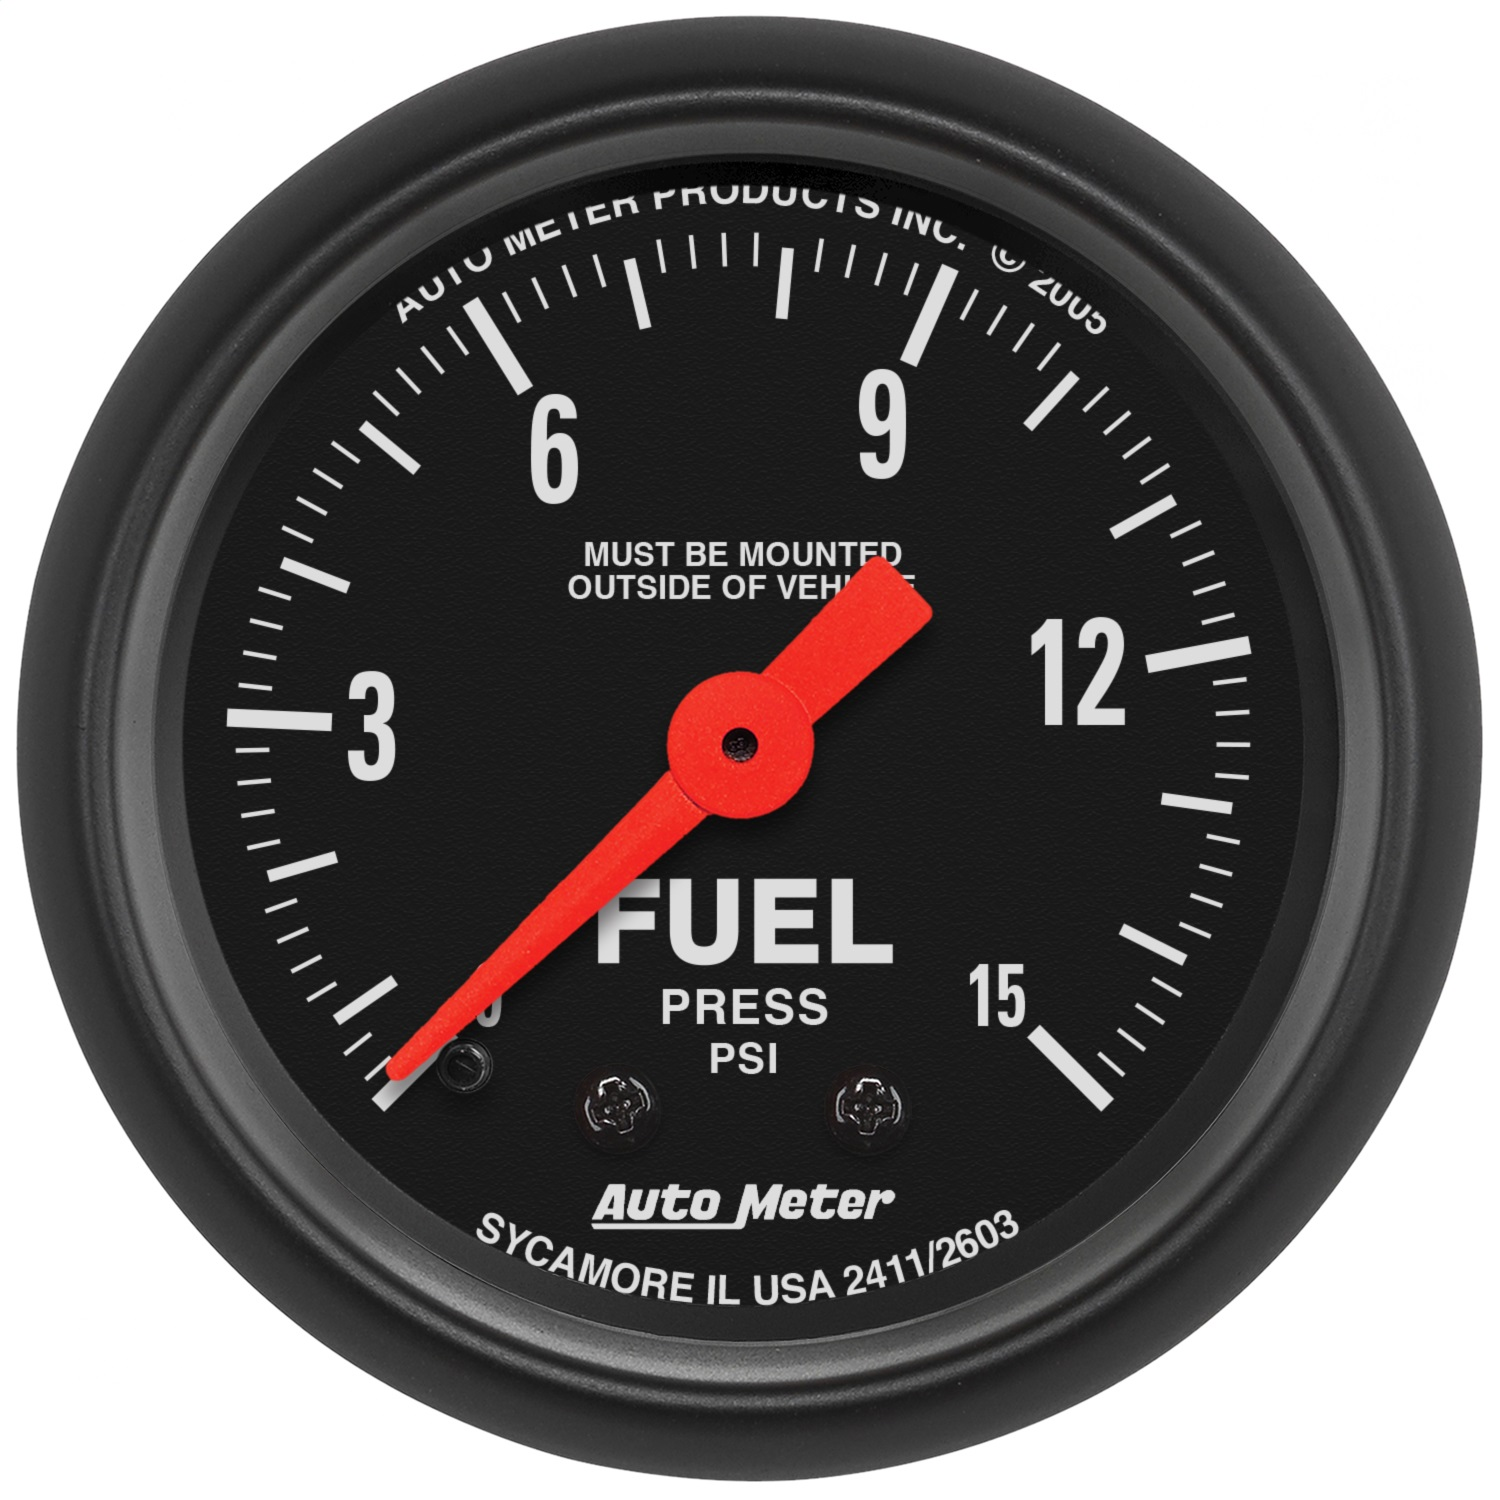 Auto Meter 2603 Z Series Mechanical Fuel Pressure Gauge